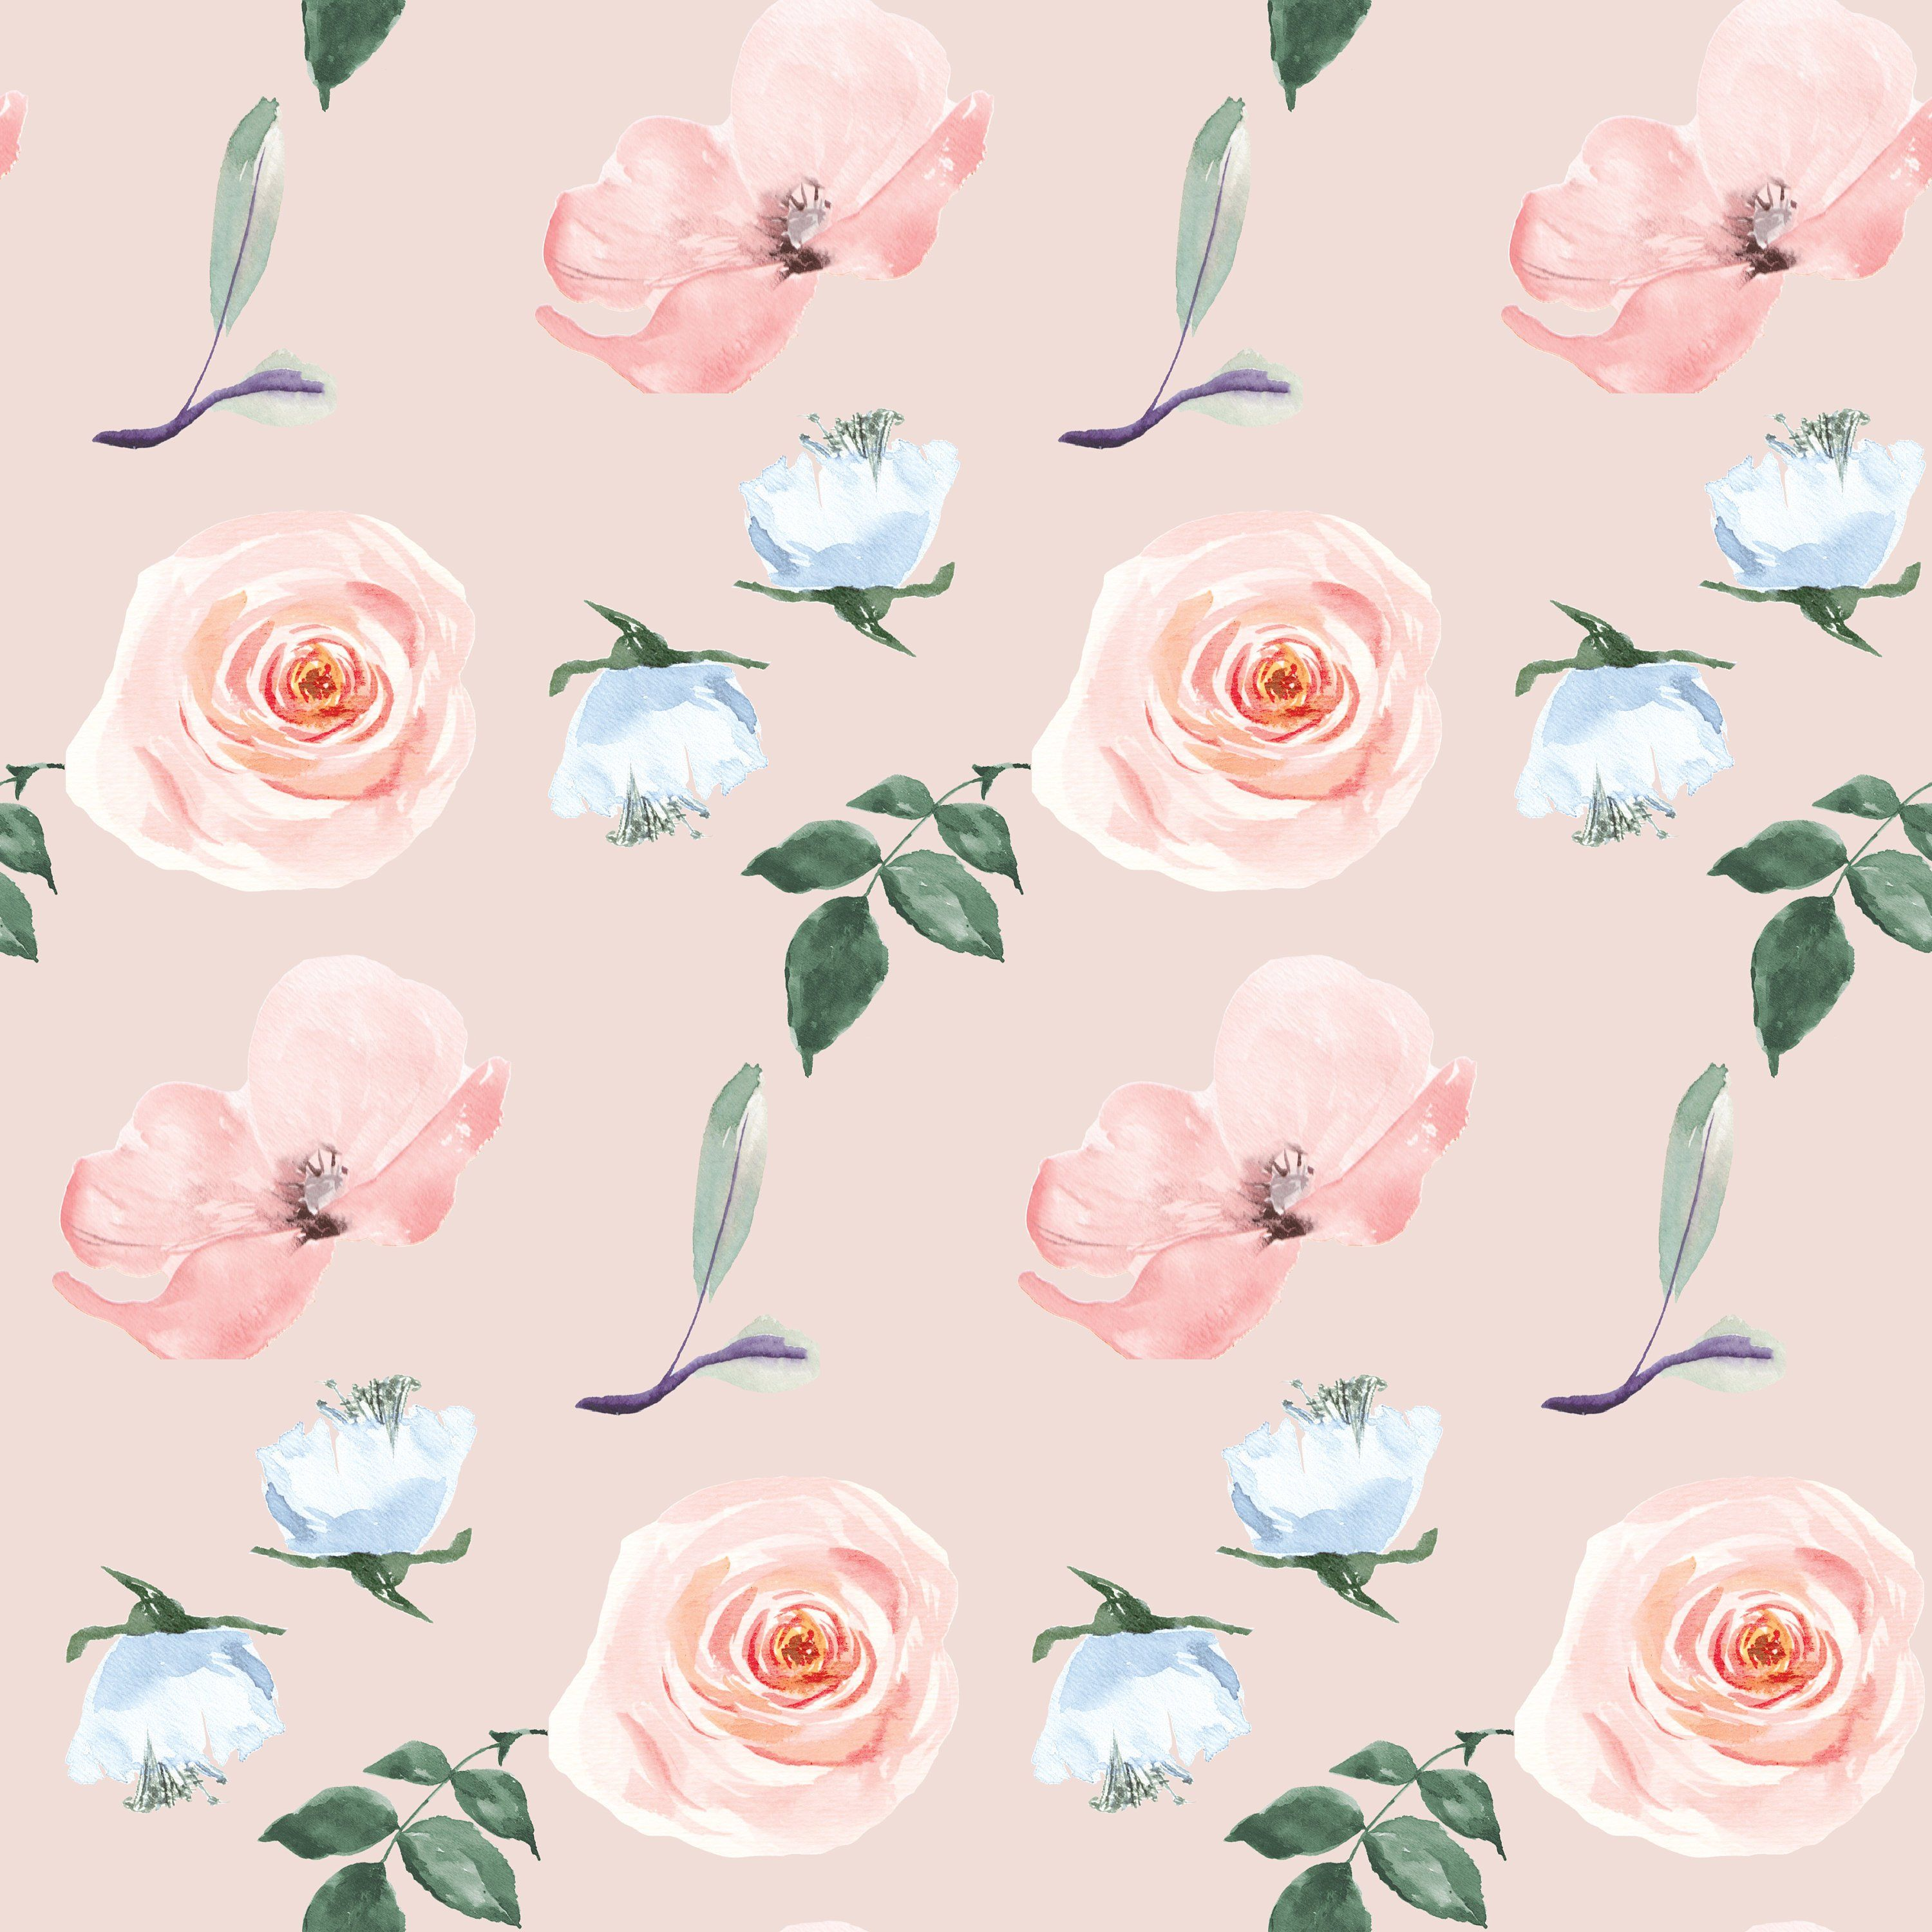 Floral Print Fabric,Flowers Print Fabrics,by the meters fabric,digital printed fabric